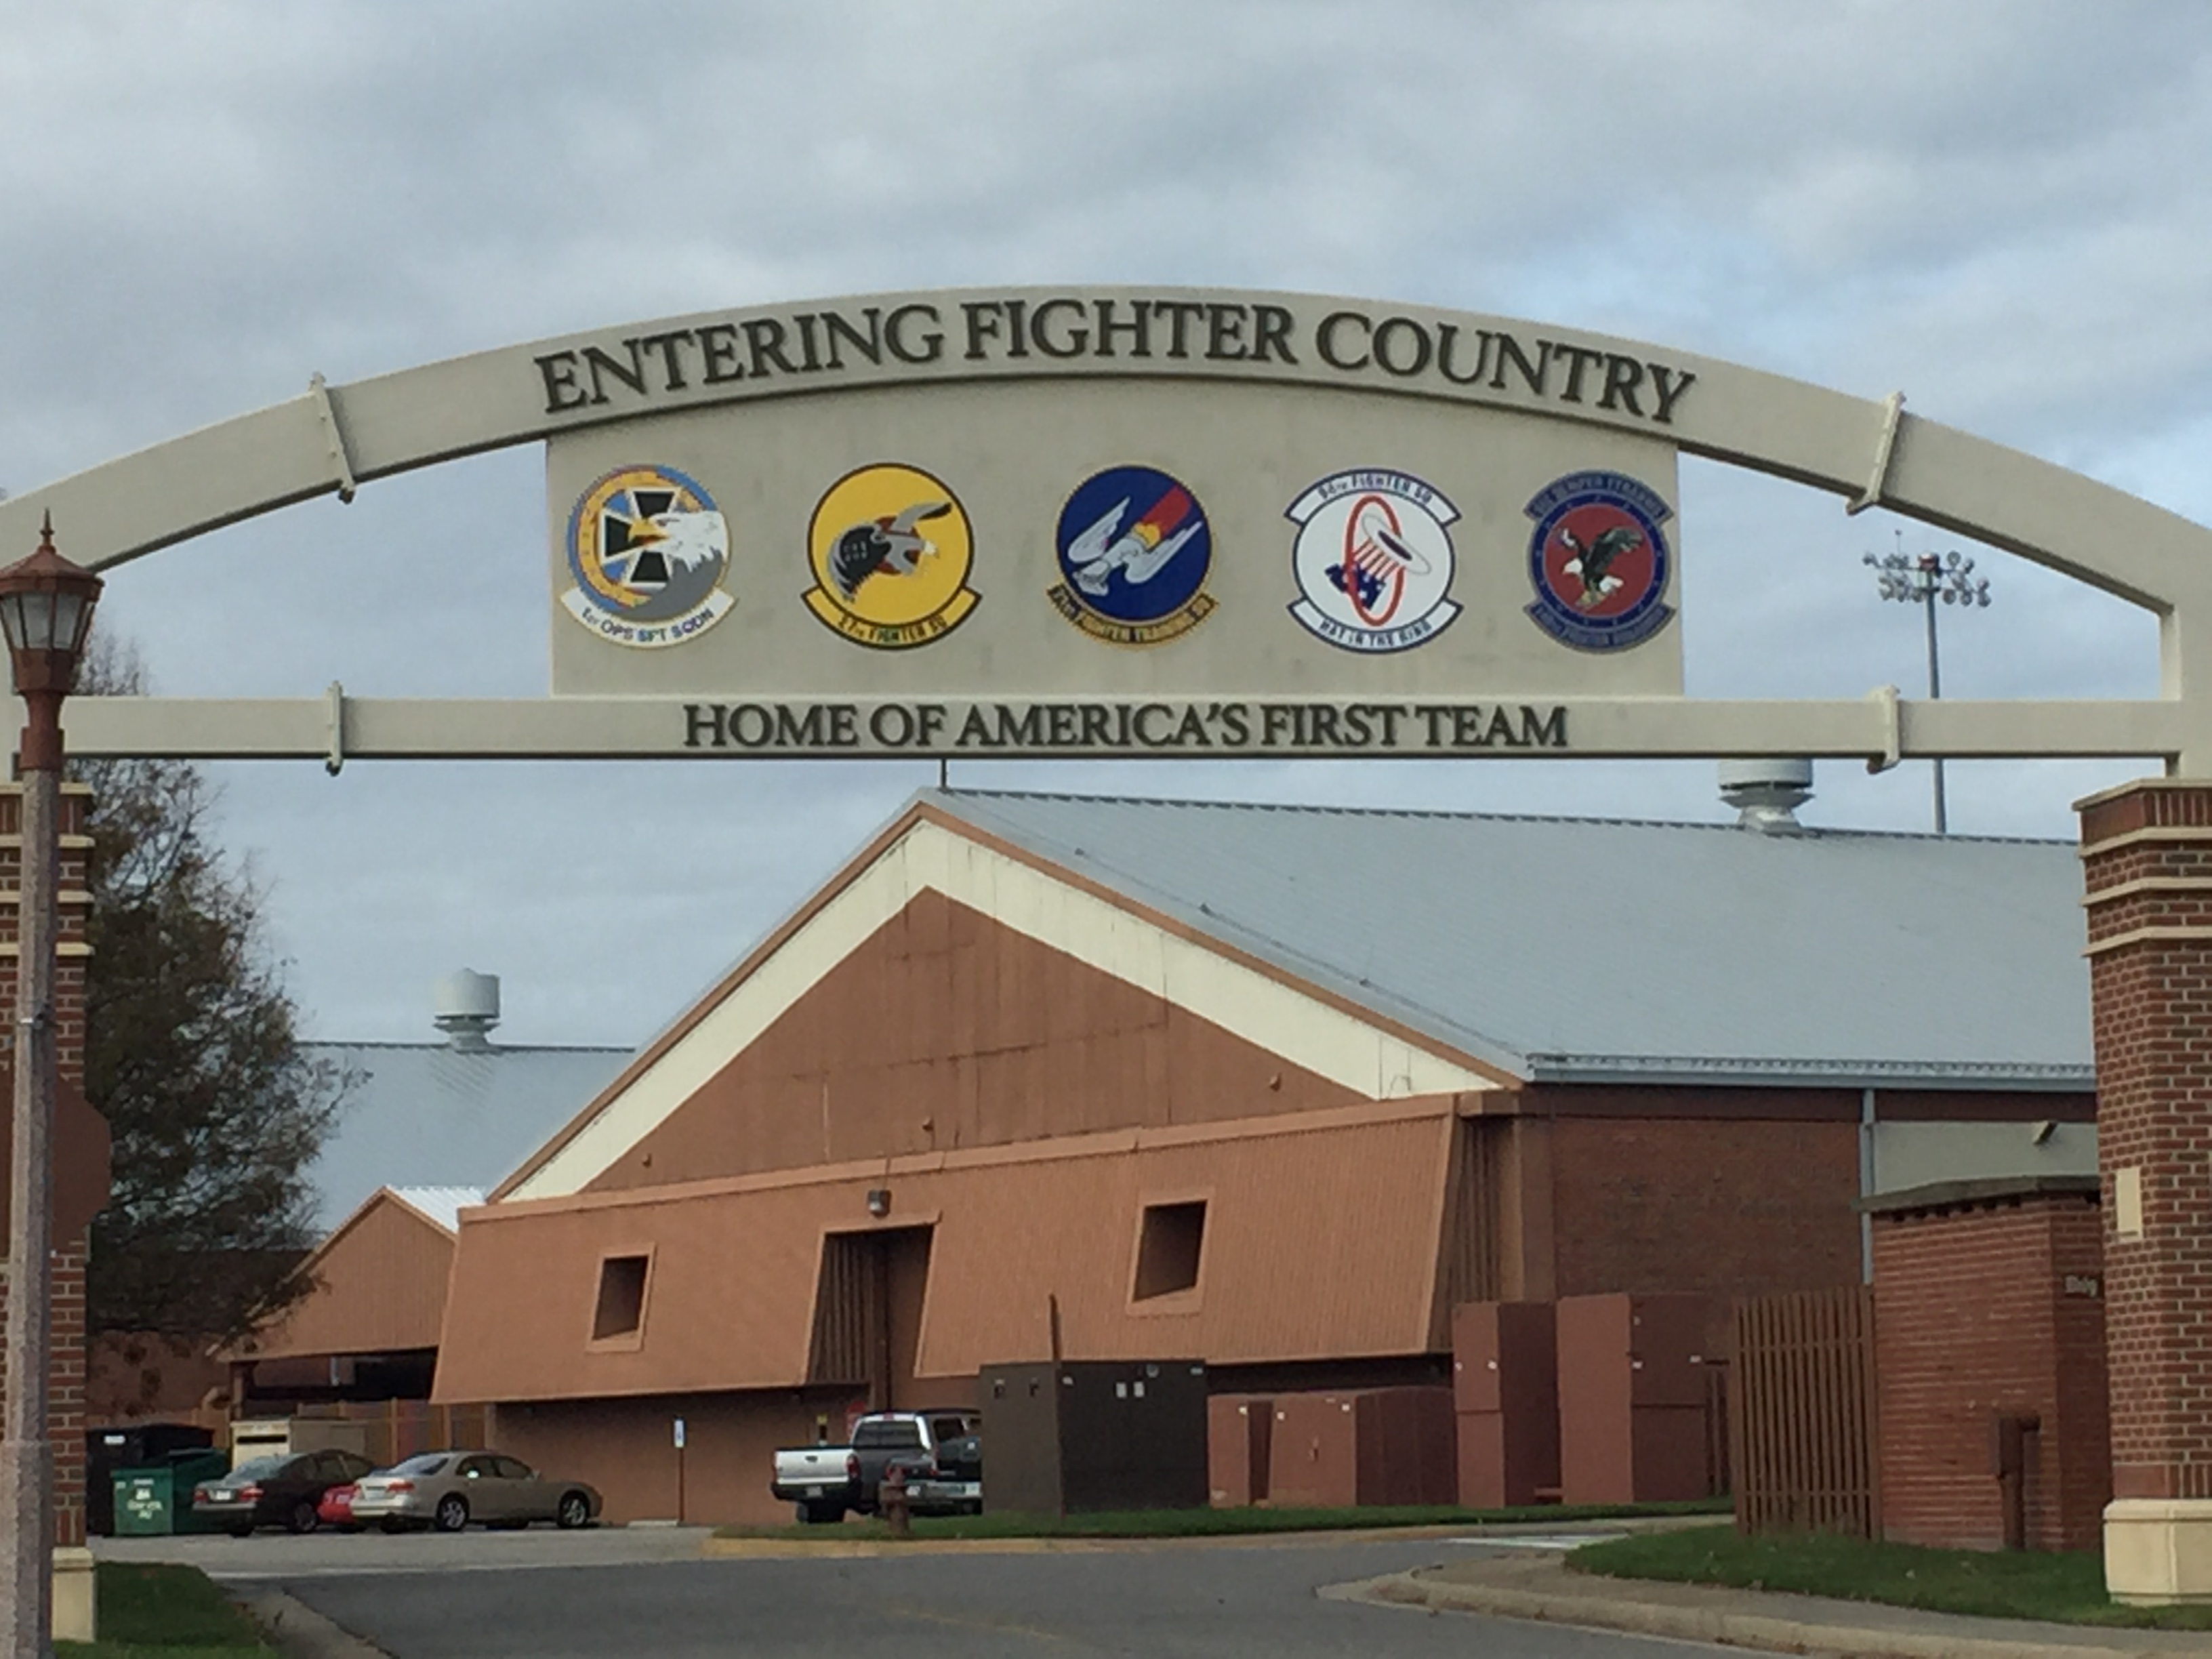 Langley Air Force Base In Hampton Virginia Is Home To Us Air Combat Command And 1st Fighter Wing The Air Force S Oldest Major Combat Unit